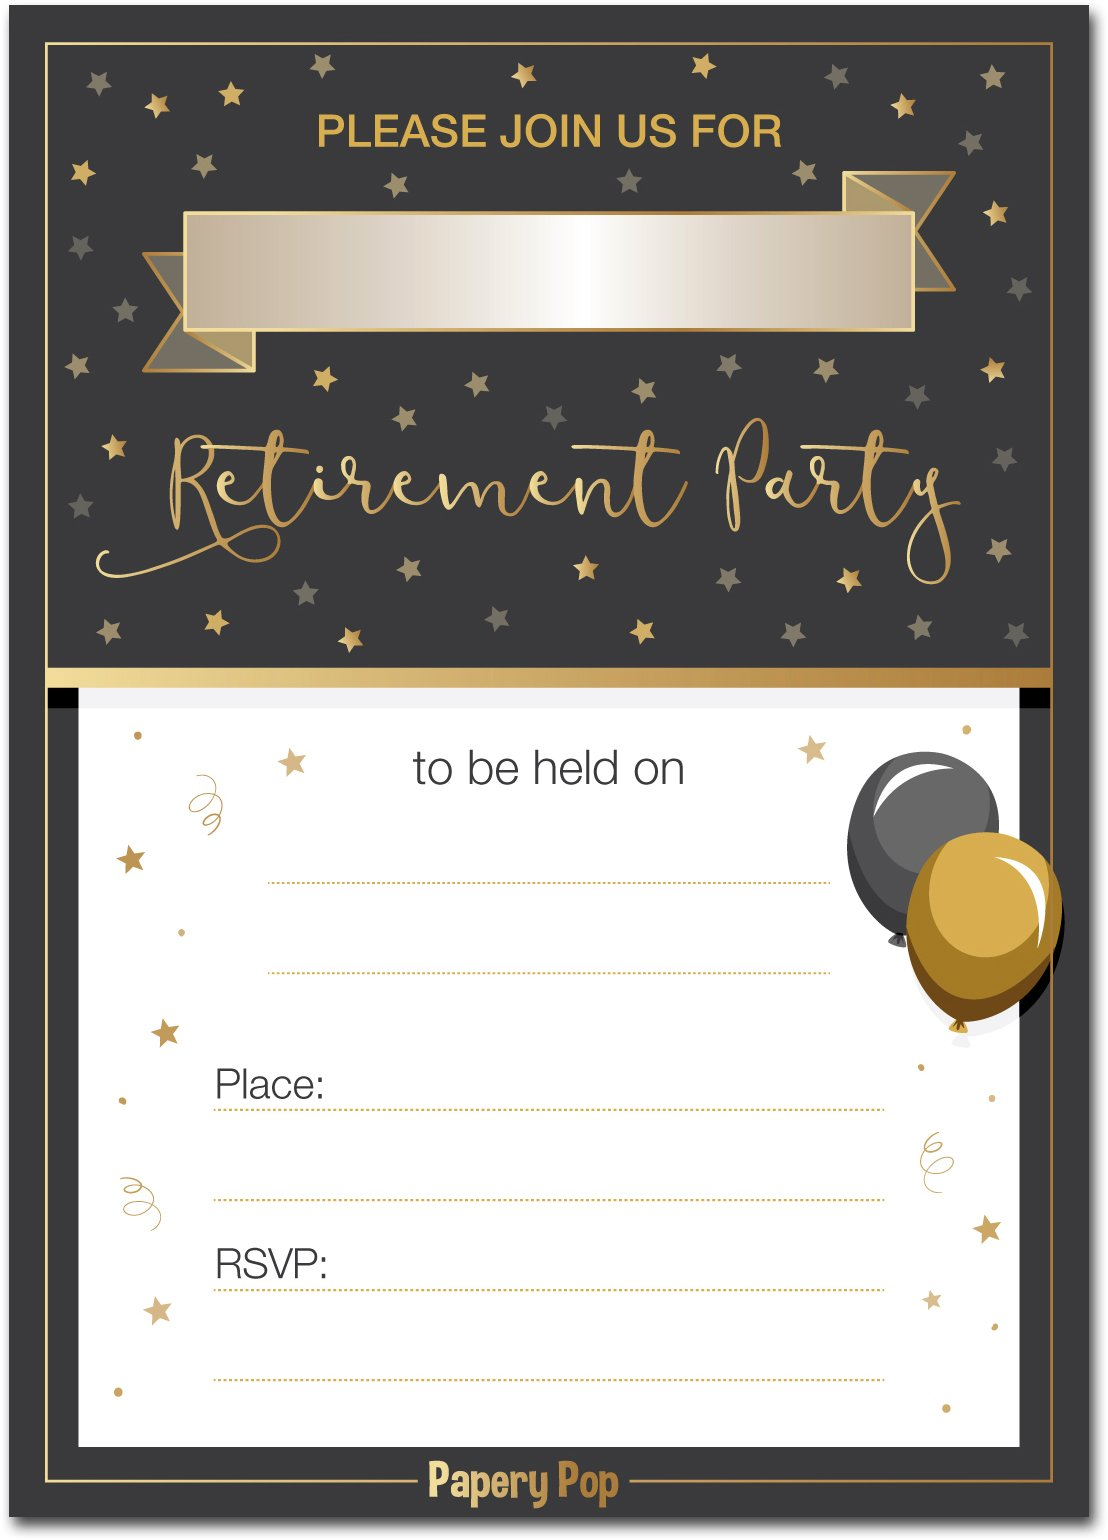 30 Retirement Party Invitations with Envelopes for Men or Women (30 Pack) - Retired Invites Cards